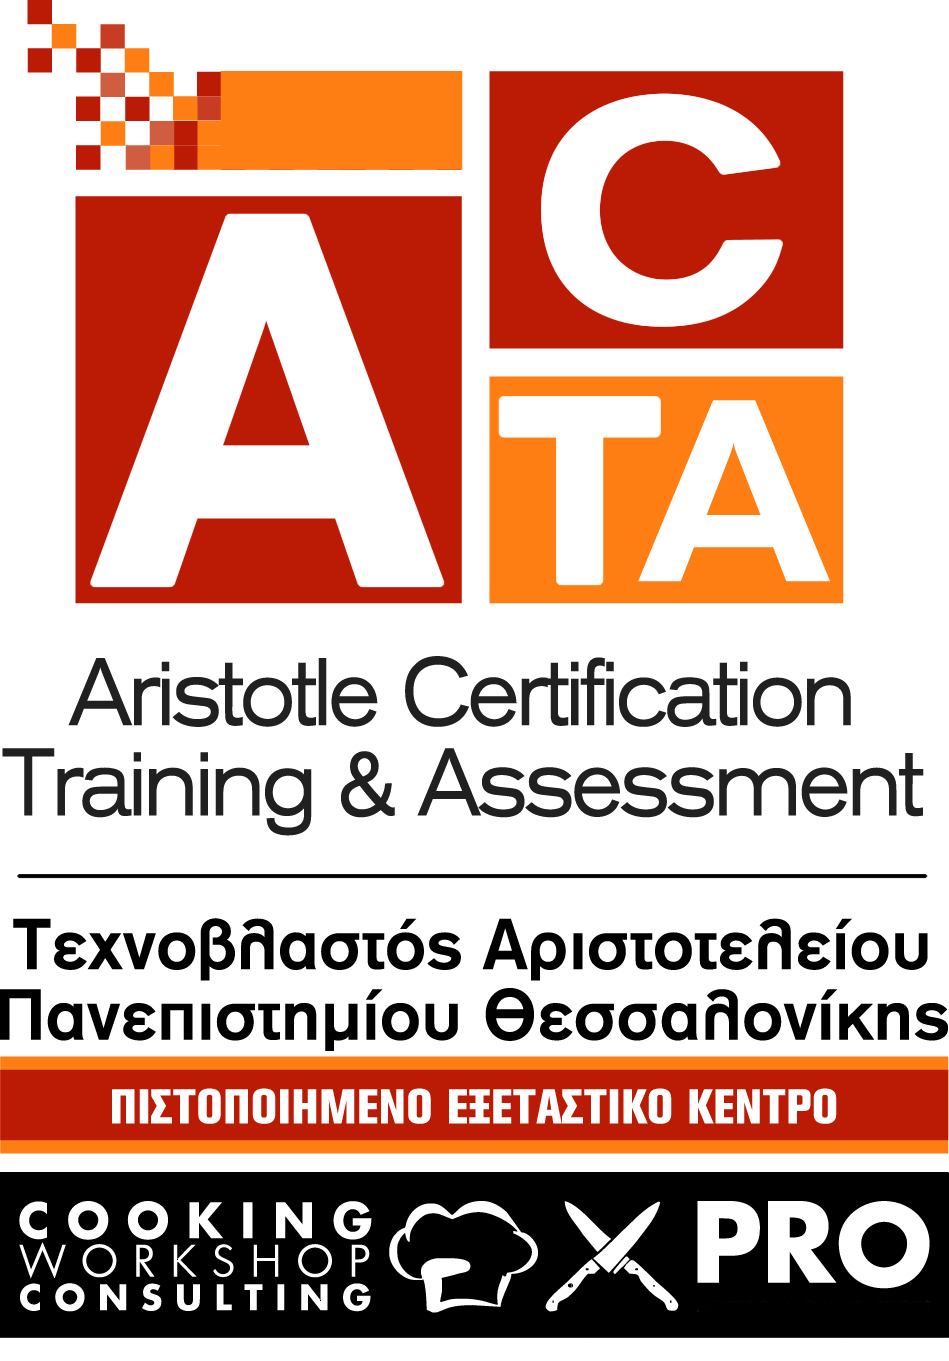 Cooking workshop Consulting ACTA (Τεχνοβλαστός του Αριστοτελείου Πανεπιστημίου Θεσσαλονίκης)